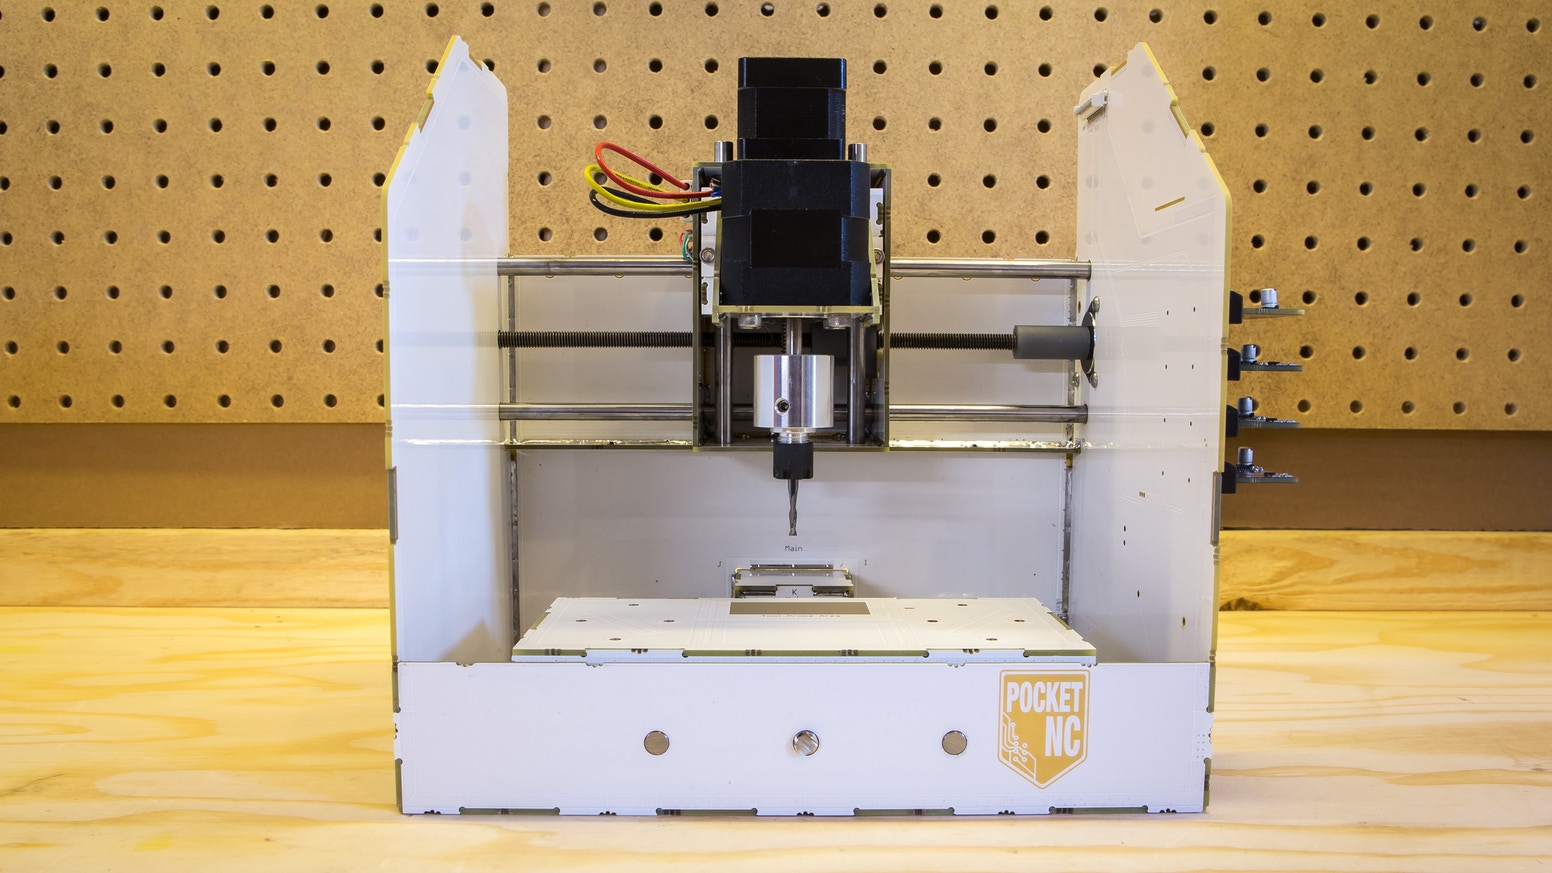 The FR4 is a 3 axis shield, cape, or hat for milling, laser engraving, and more assembled from a kit.